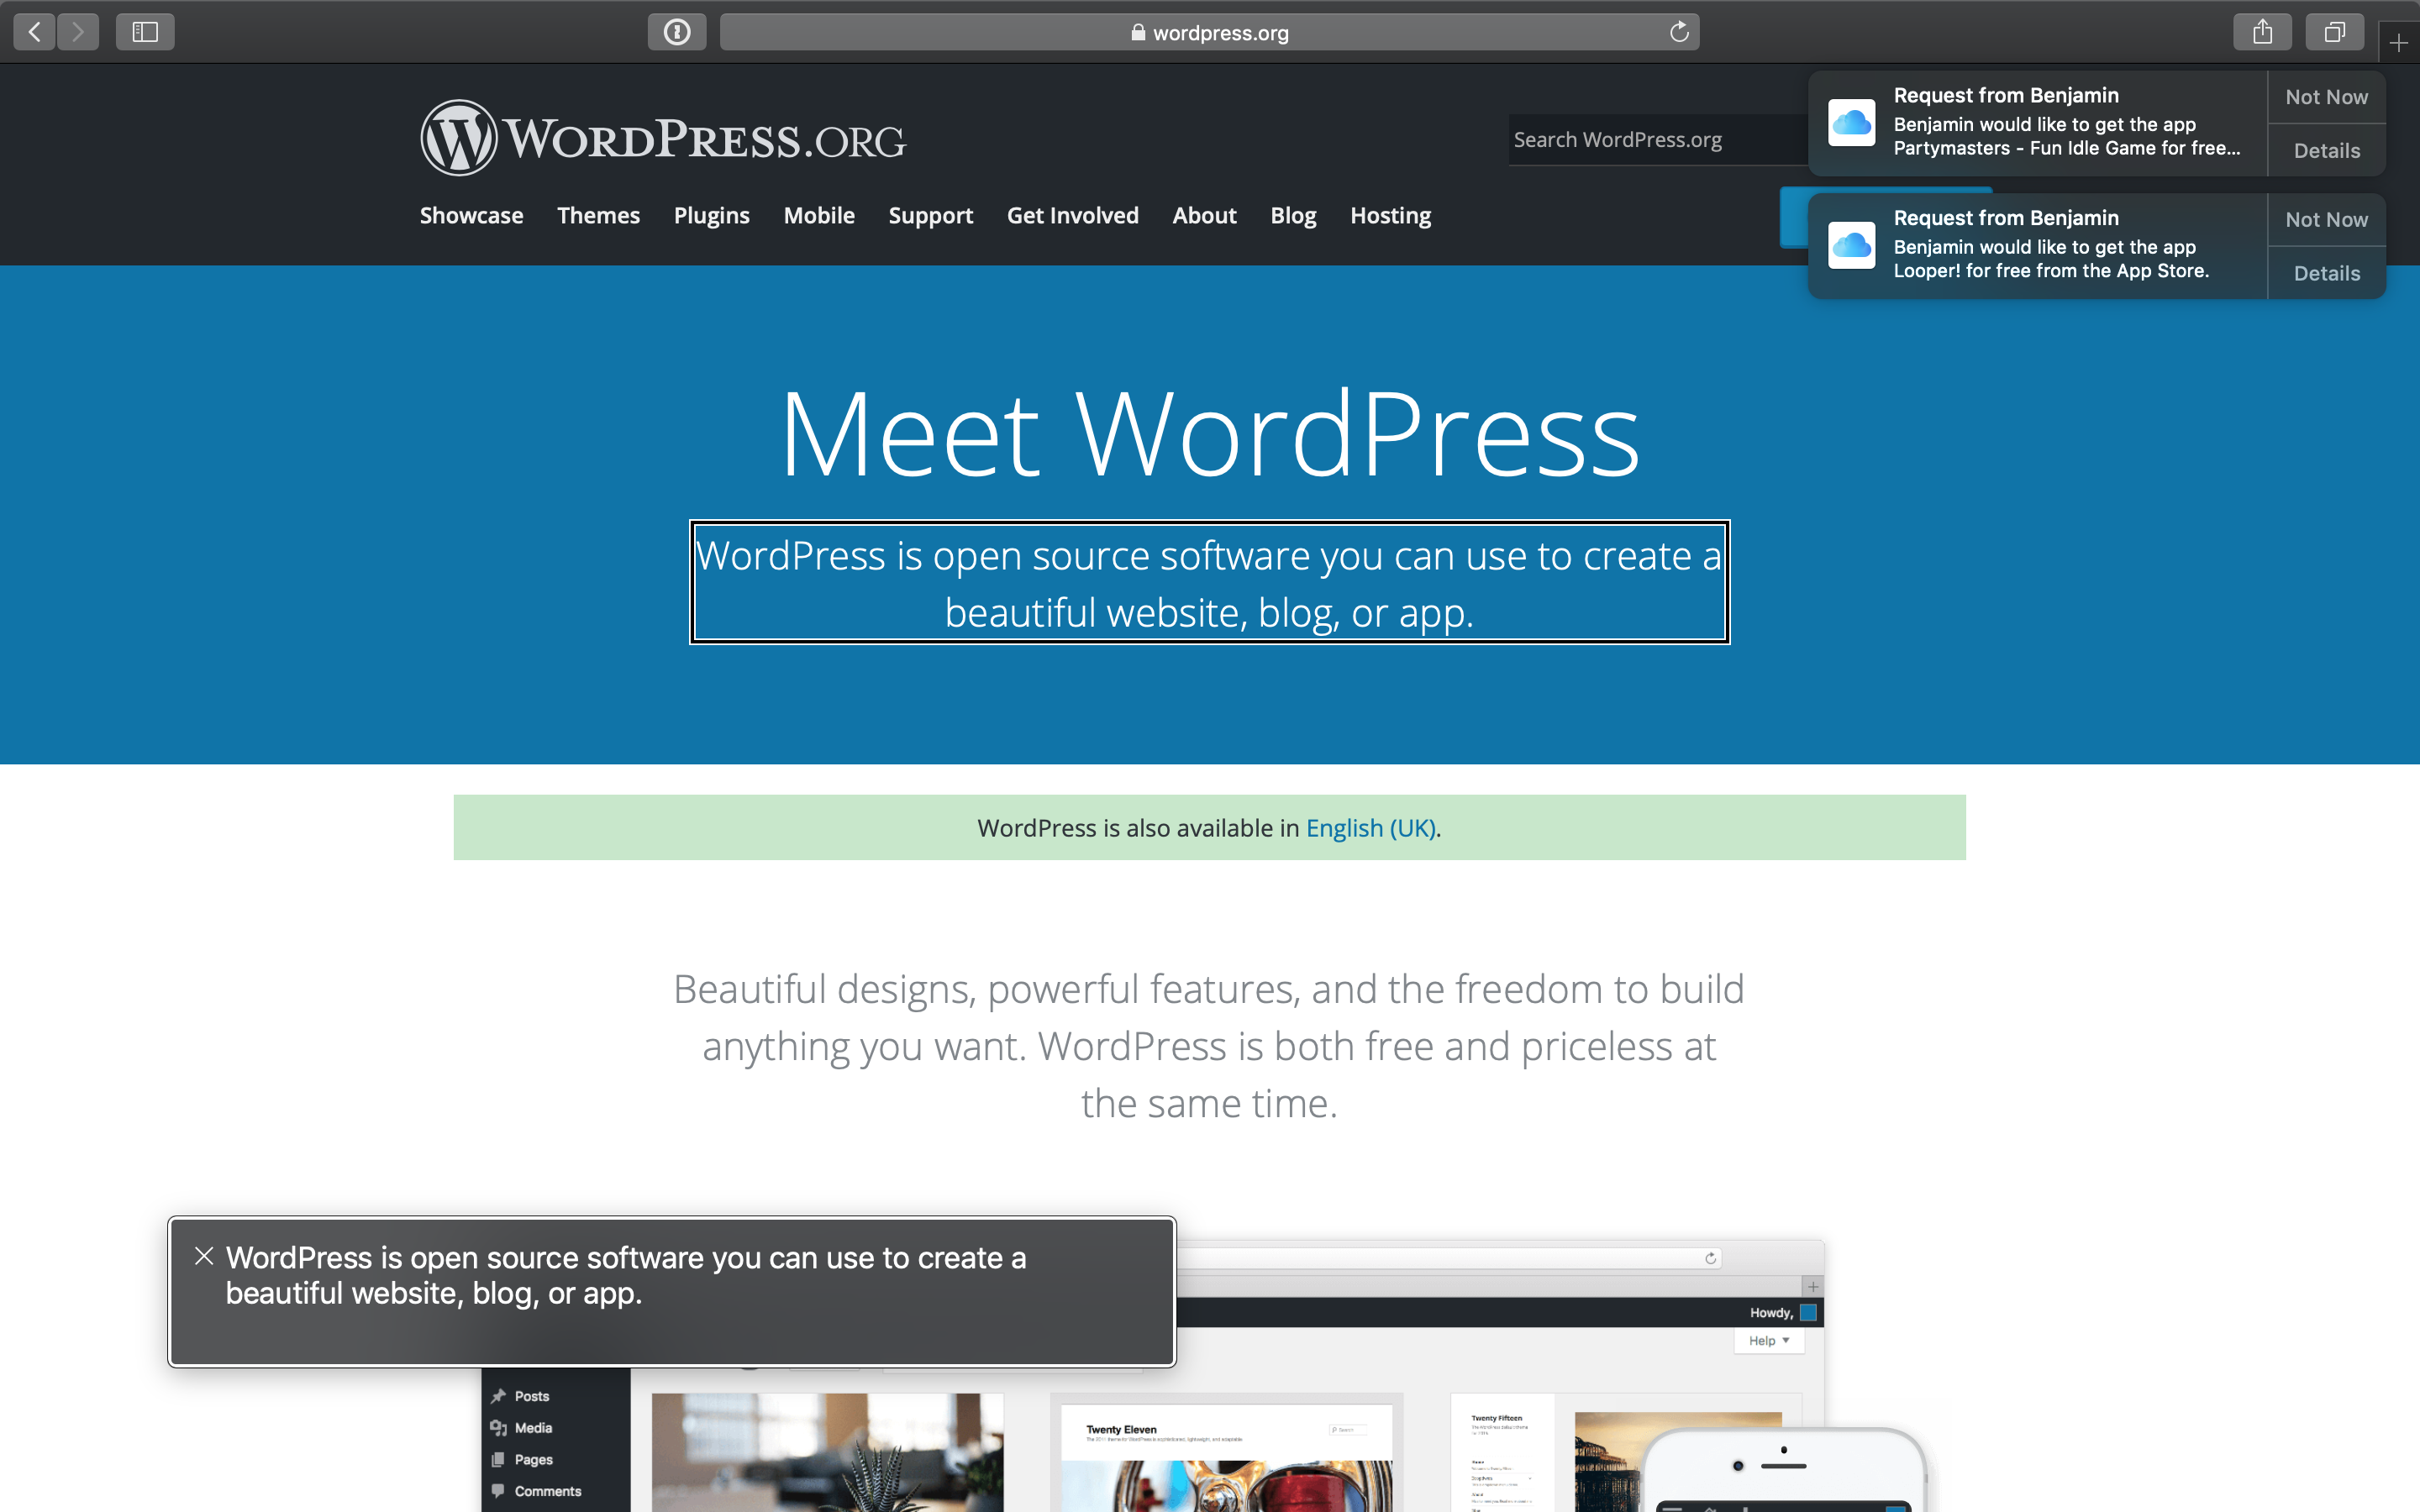 Image showing the wordpress.org homepage